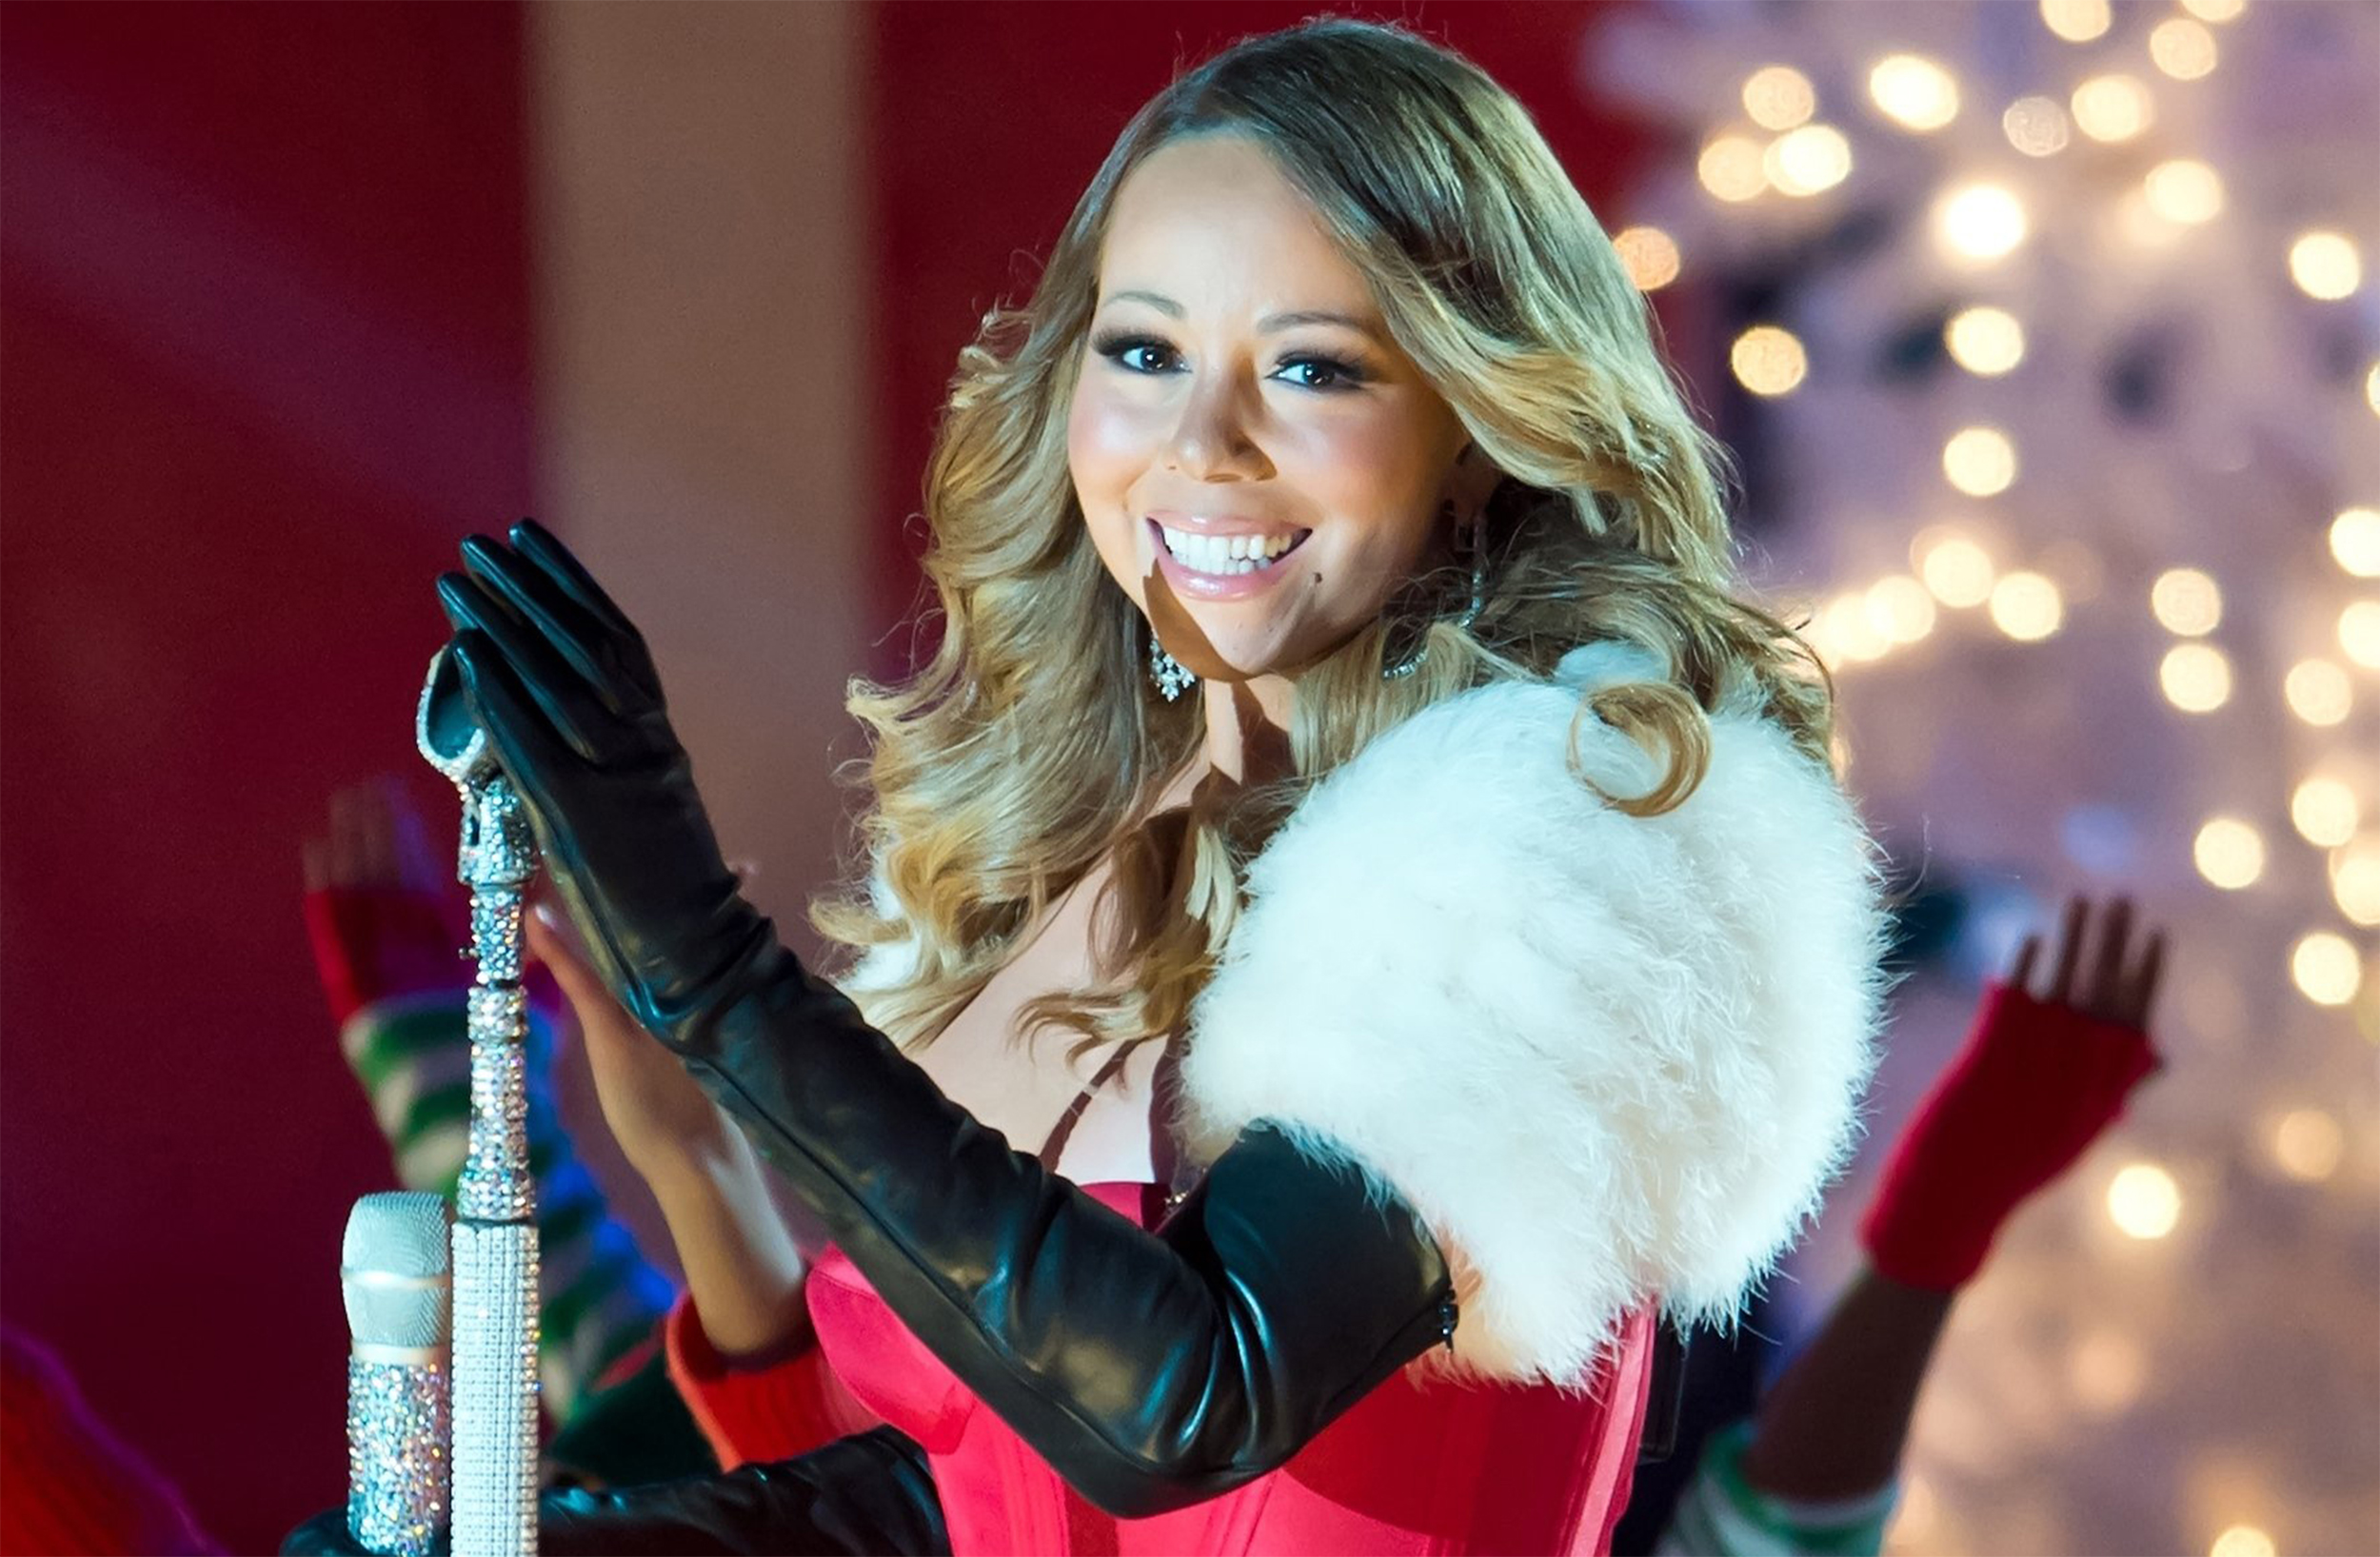 Mariah Carey All I Want For Christmas.Mariah Carey S All I Want For Christmas Is You Is The Best